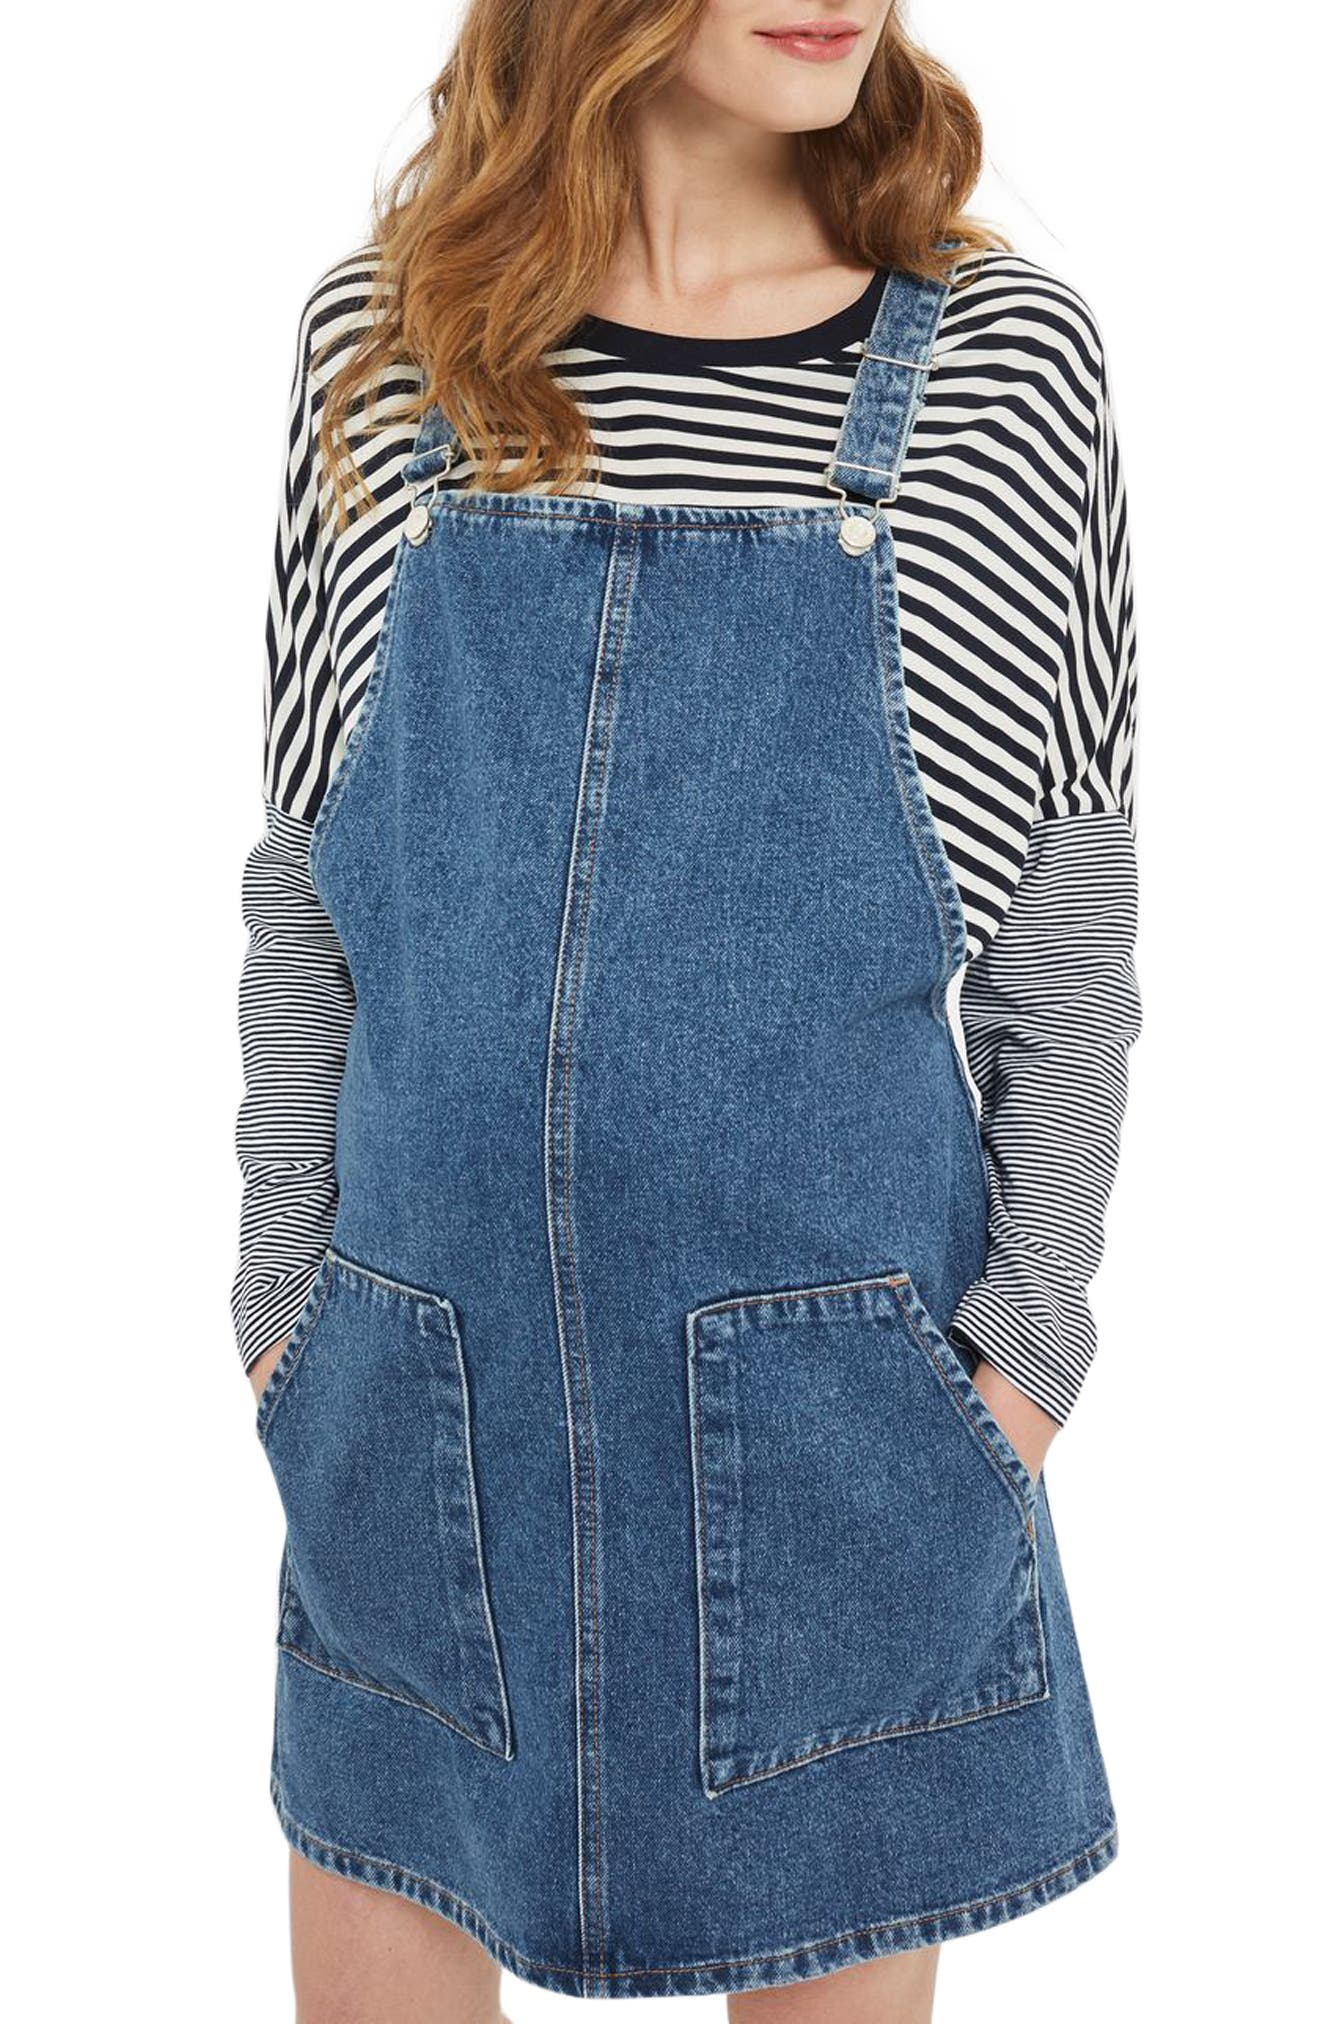 Topshop Maternity Pinafore Dress